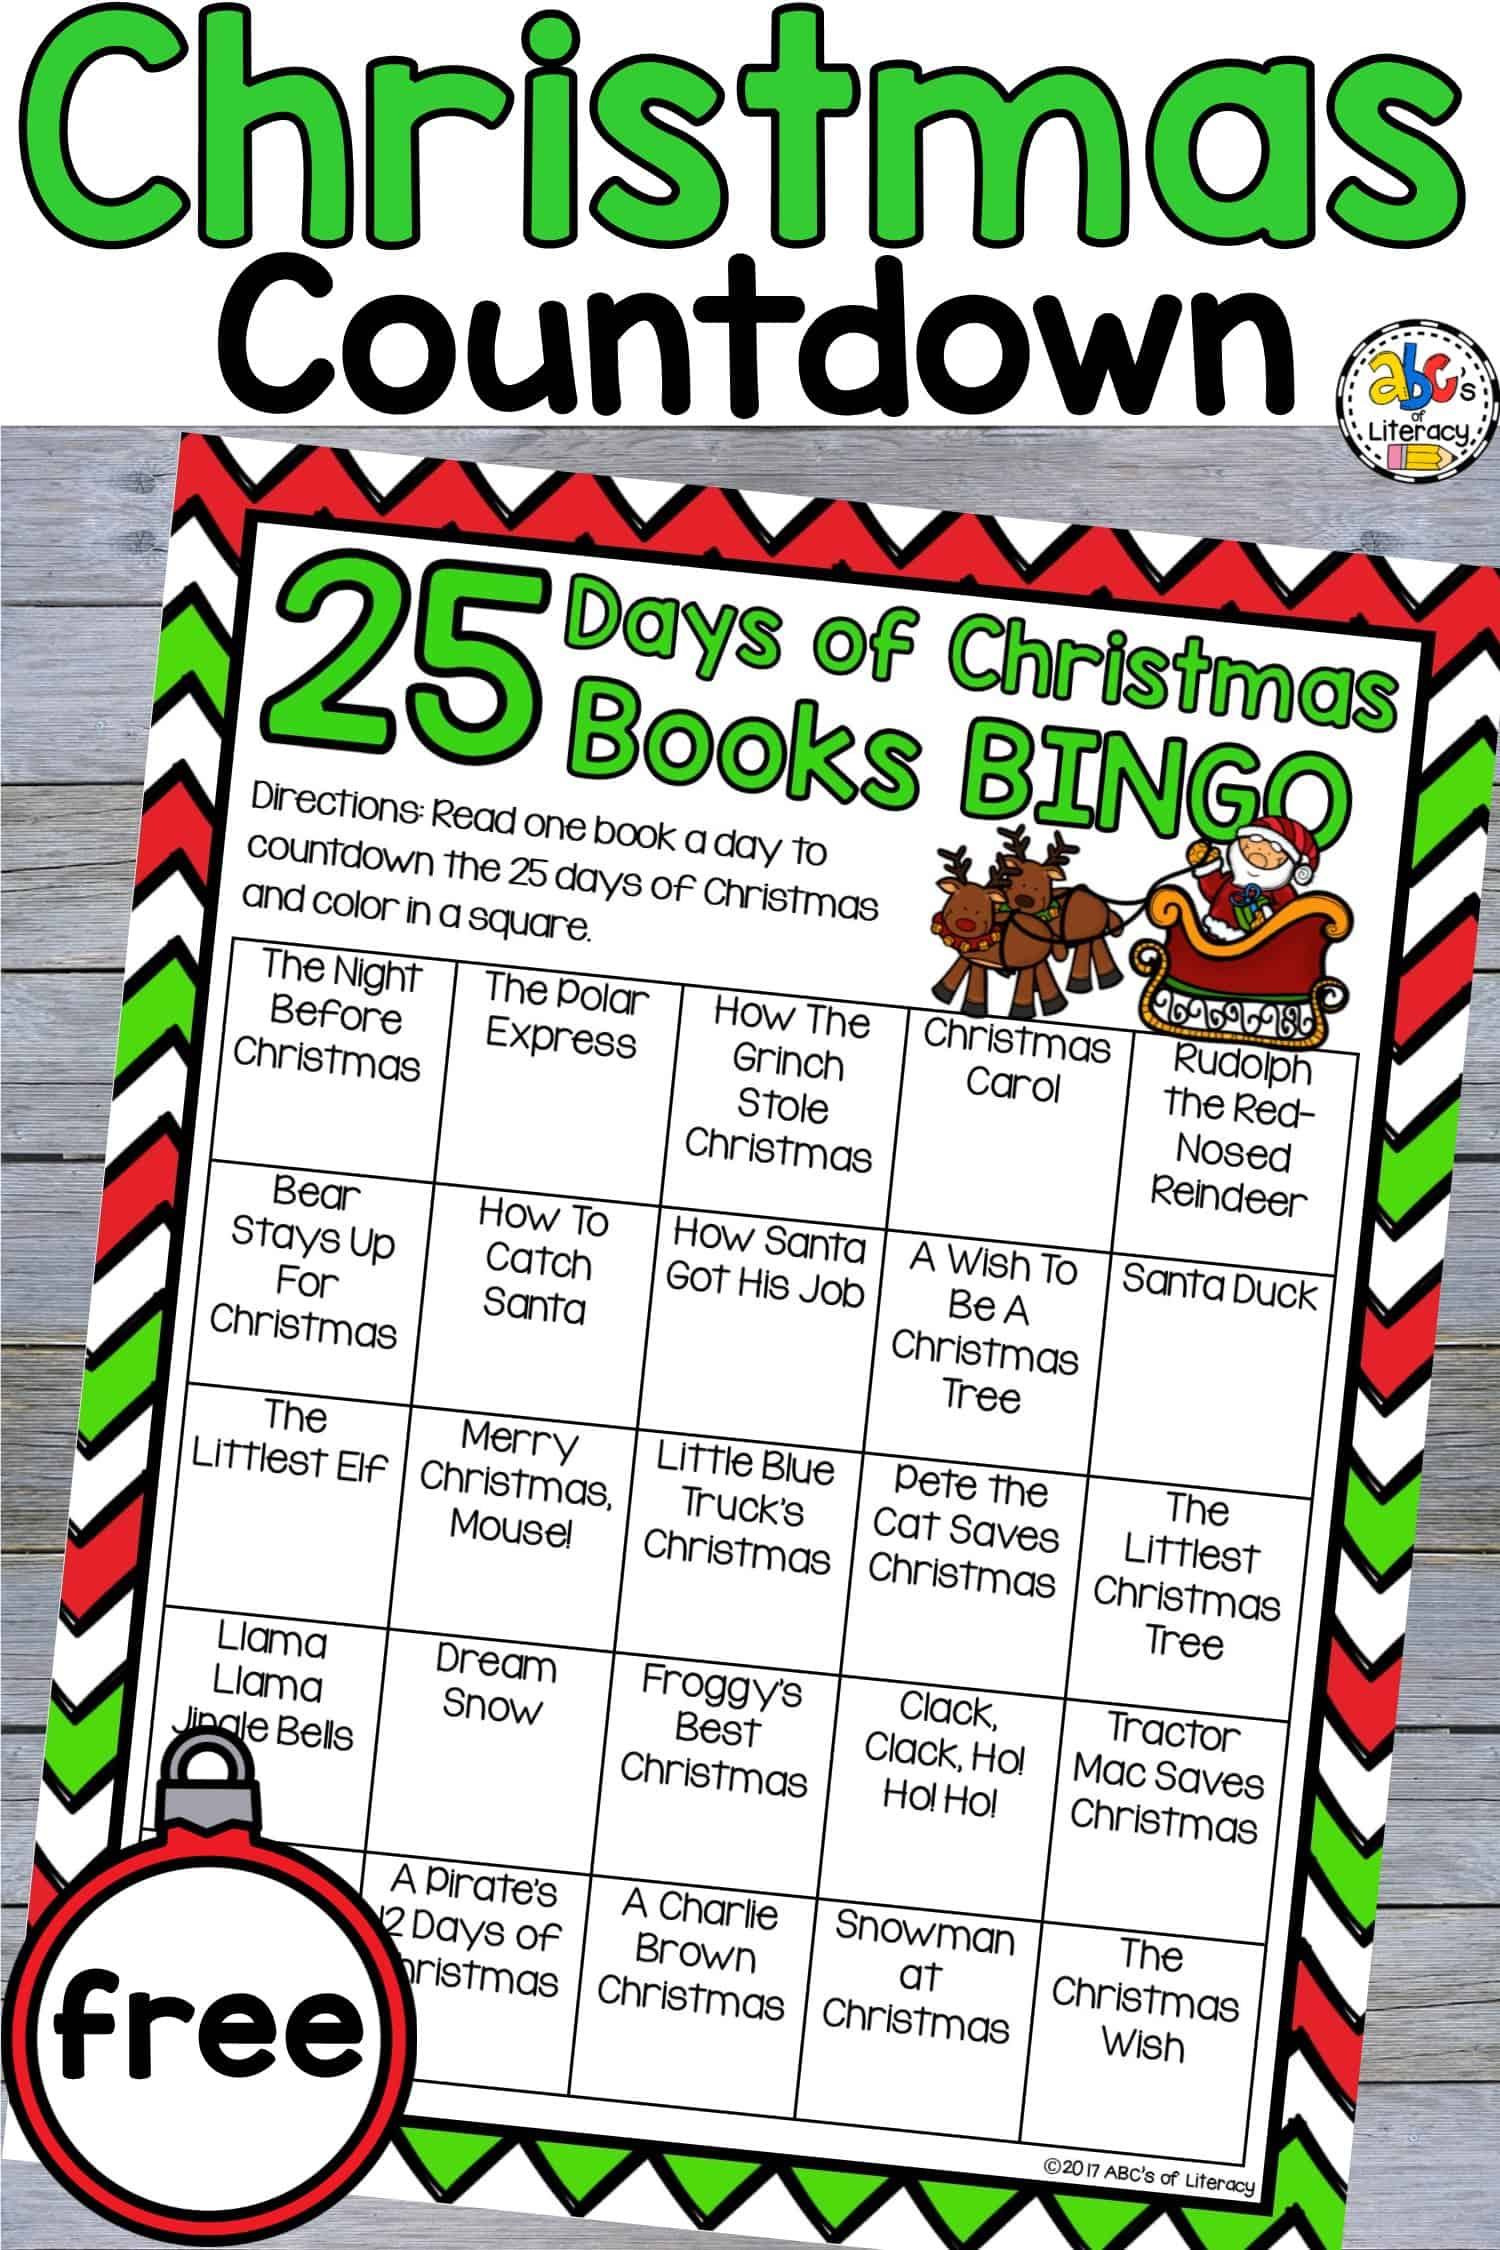 25 Days of Christmas Books BINGO